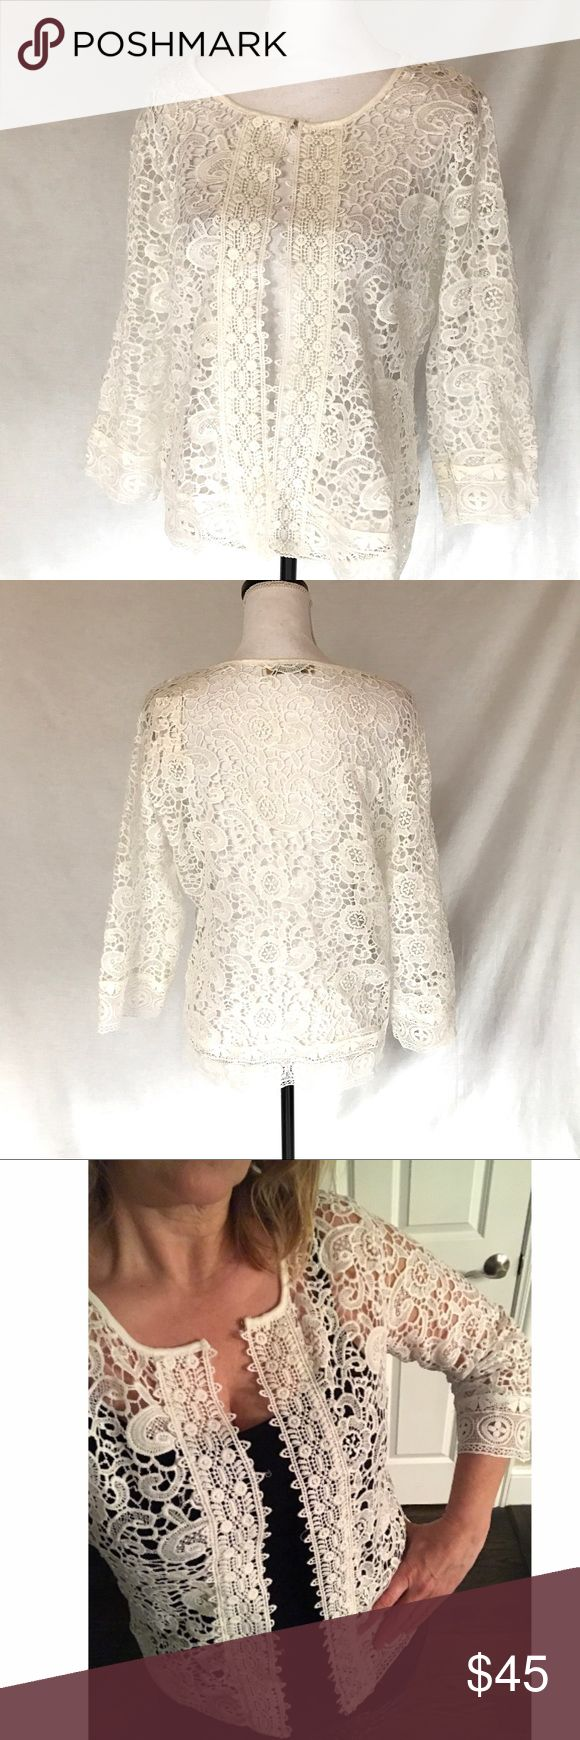 "NWT White Lace 3/4 Sleeve Open Cardigan Large New with tag white lace Open Cardigan.  3/4 length sleeves.   Hook at neckline in front.  Garment tag says size 40.  Paper tag says 42.    It feels like it fits like a Large to me.  Please check measurements before buying.  Approx measurements:  chest across laying flat 21"", length 23.25"".   100% polyester. Evarosa Sweaters Cardigans"